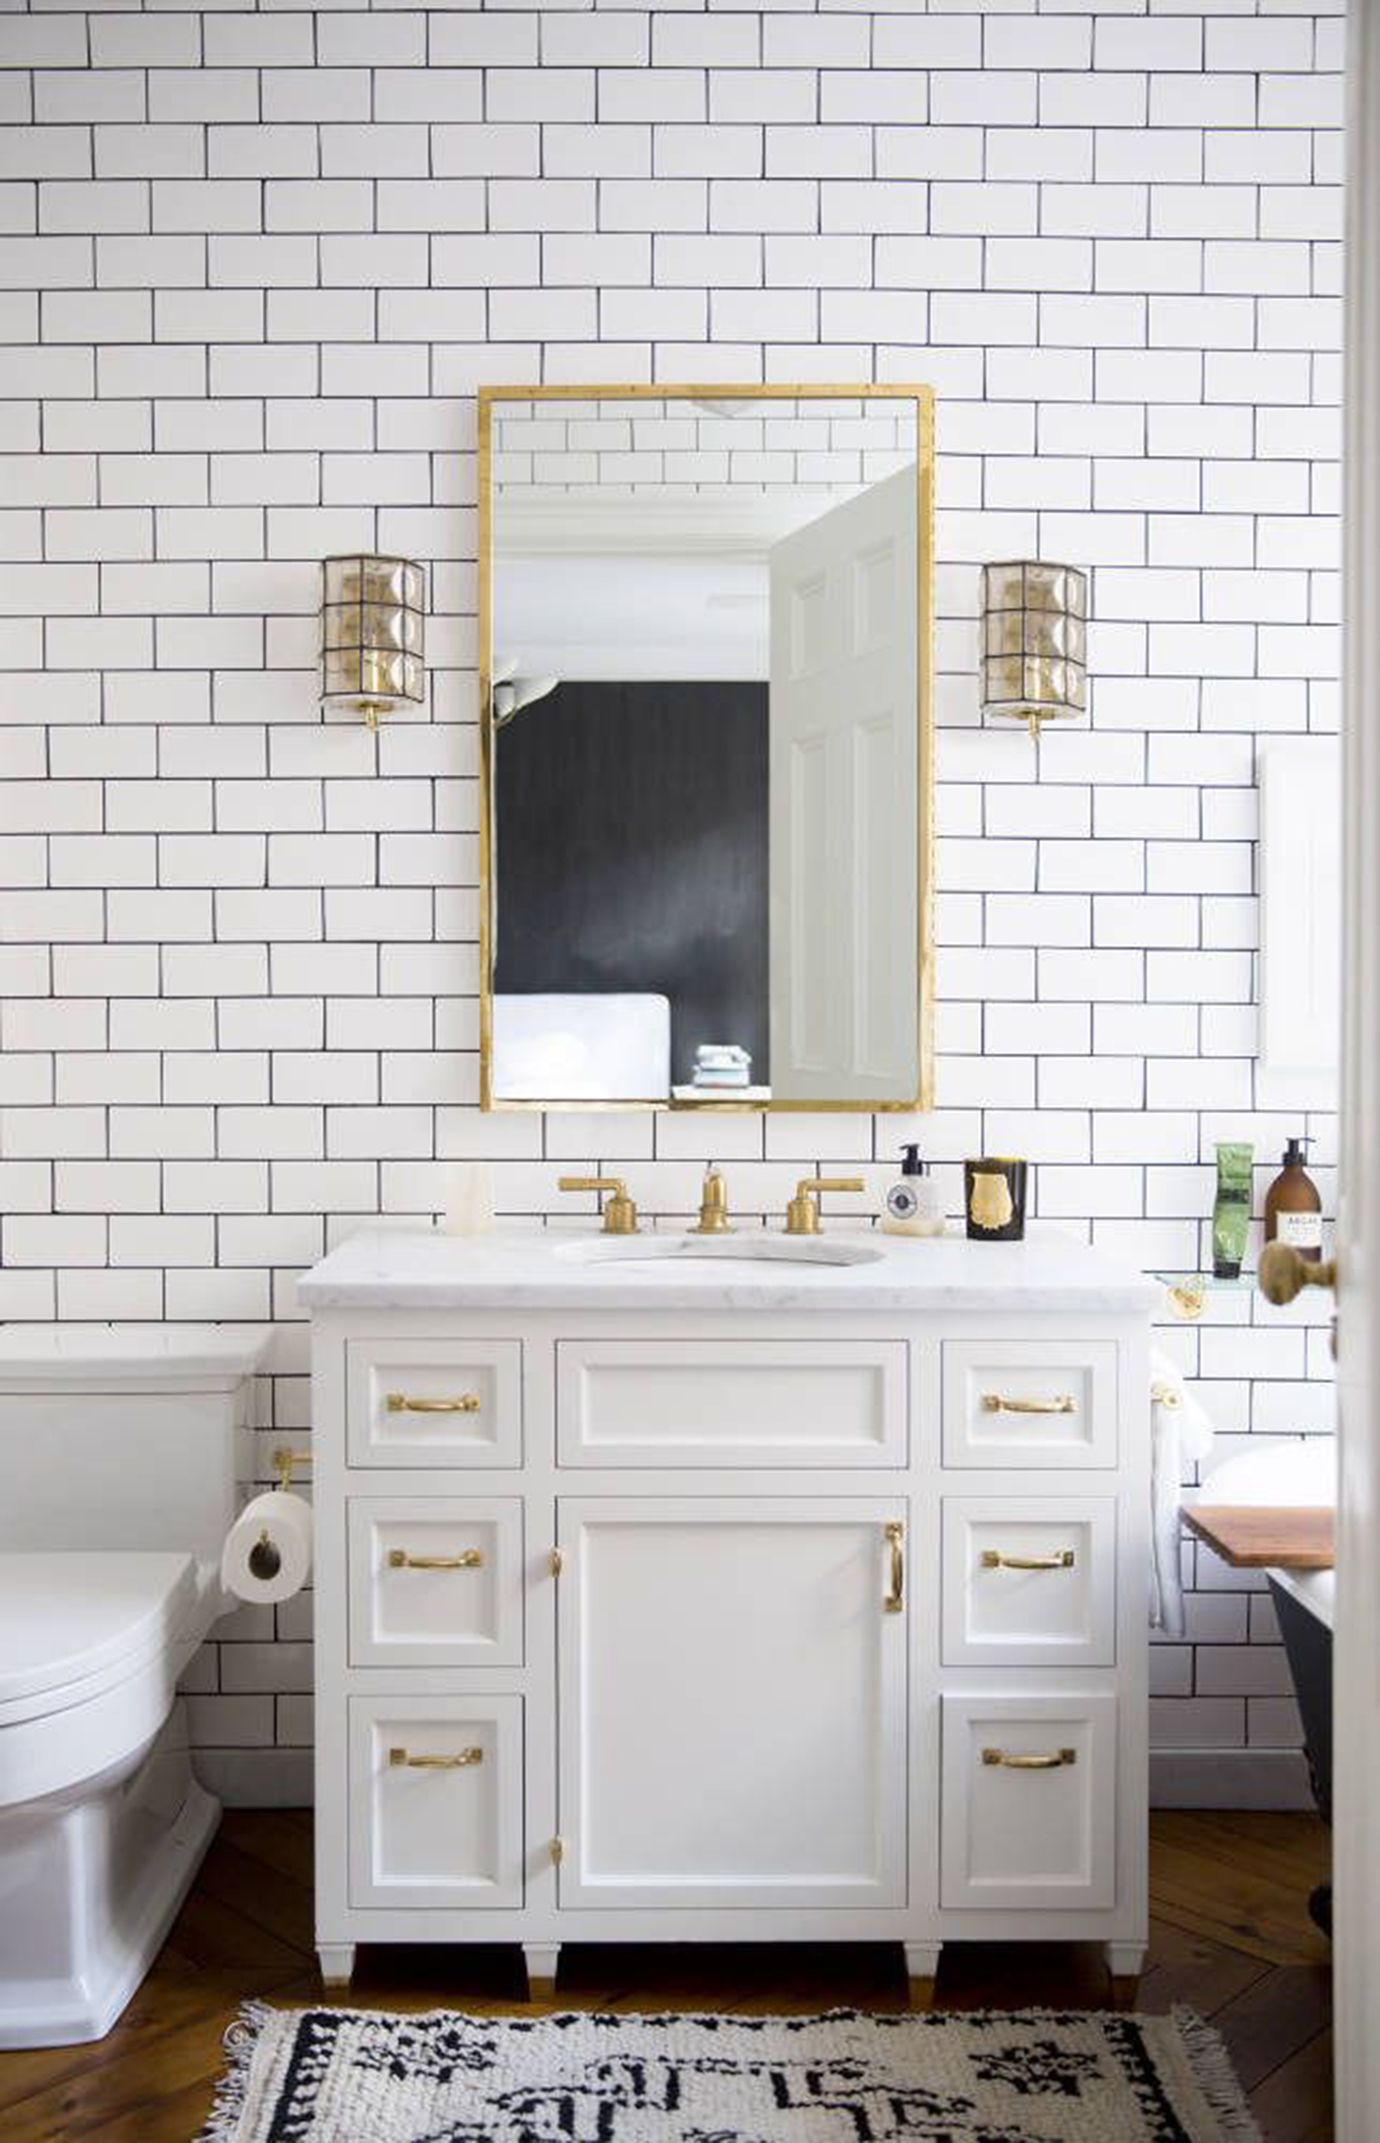 Bathroom Beauts | Subway tiles, White subway tile bathroom and White ...